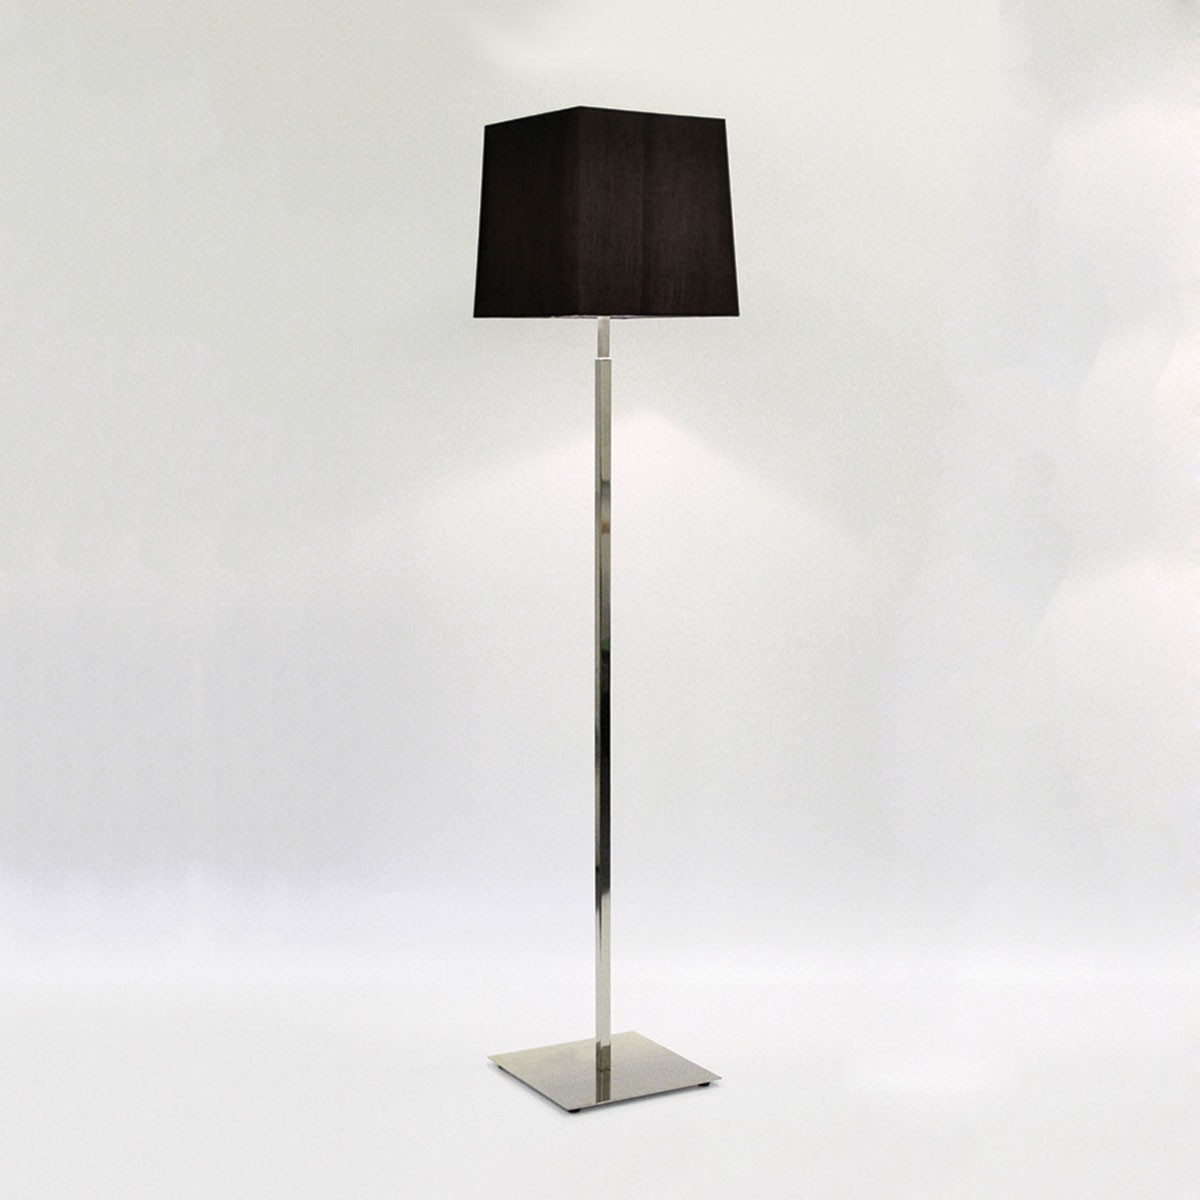 Astro Azumi Polished Nickel Floor Lamp at UK Electrical Supplies.